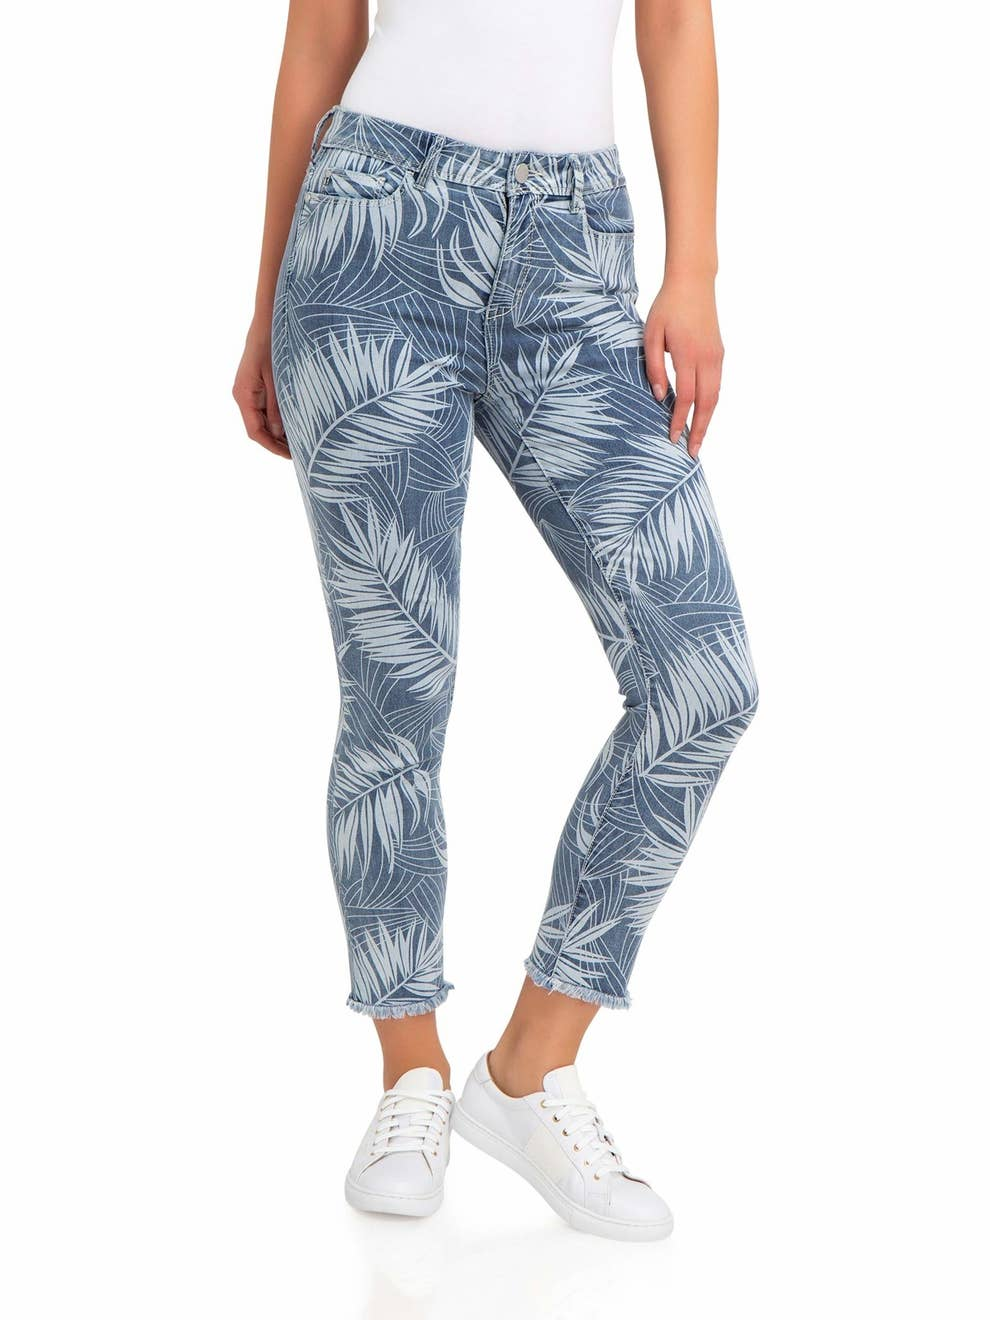 58d02a3a 27 Pieces Of Clothing From Walmart That'll Get You Excited For Summer